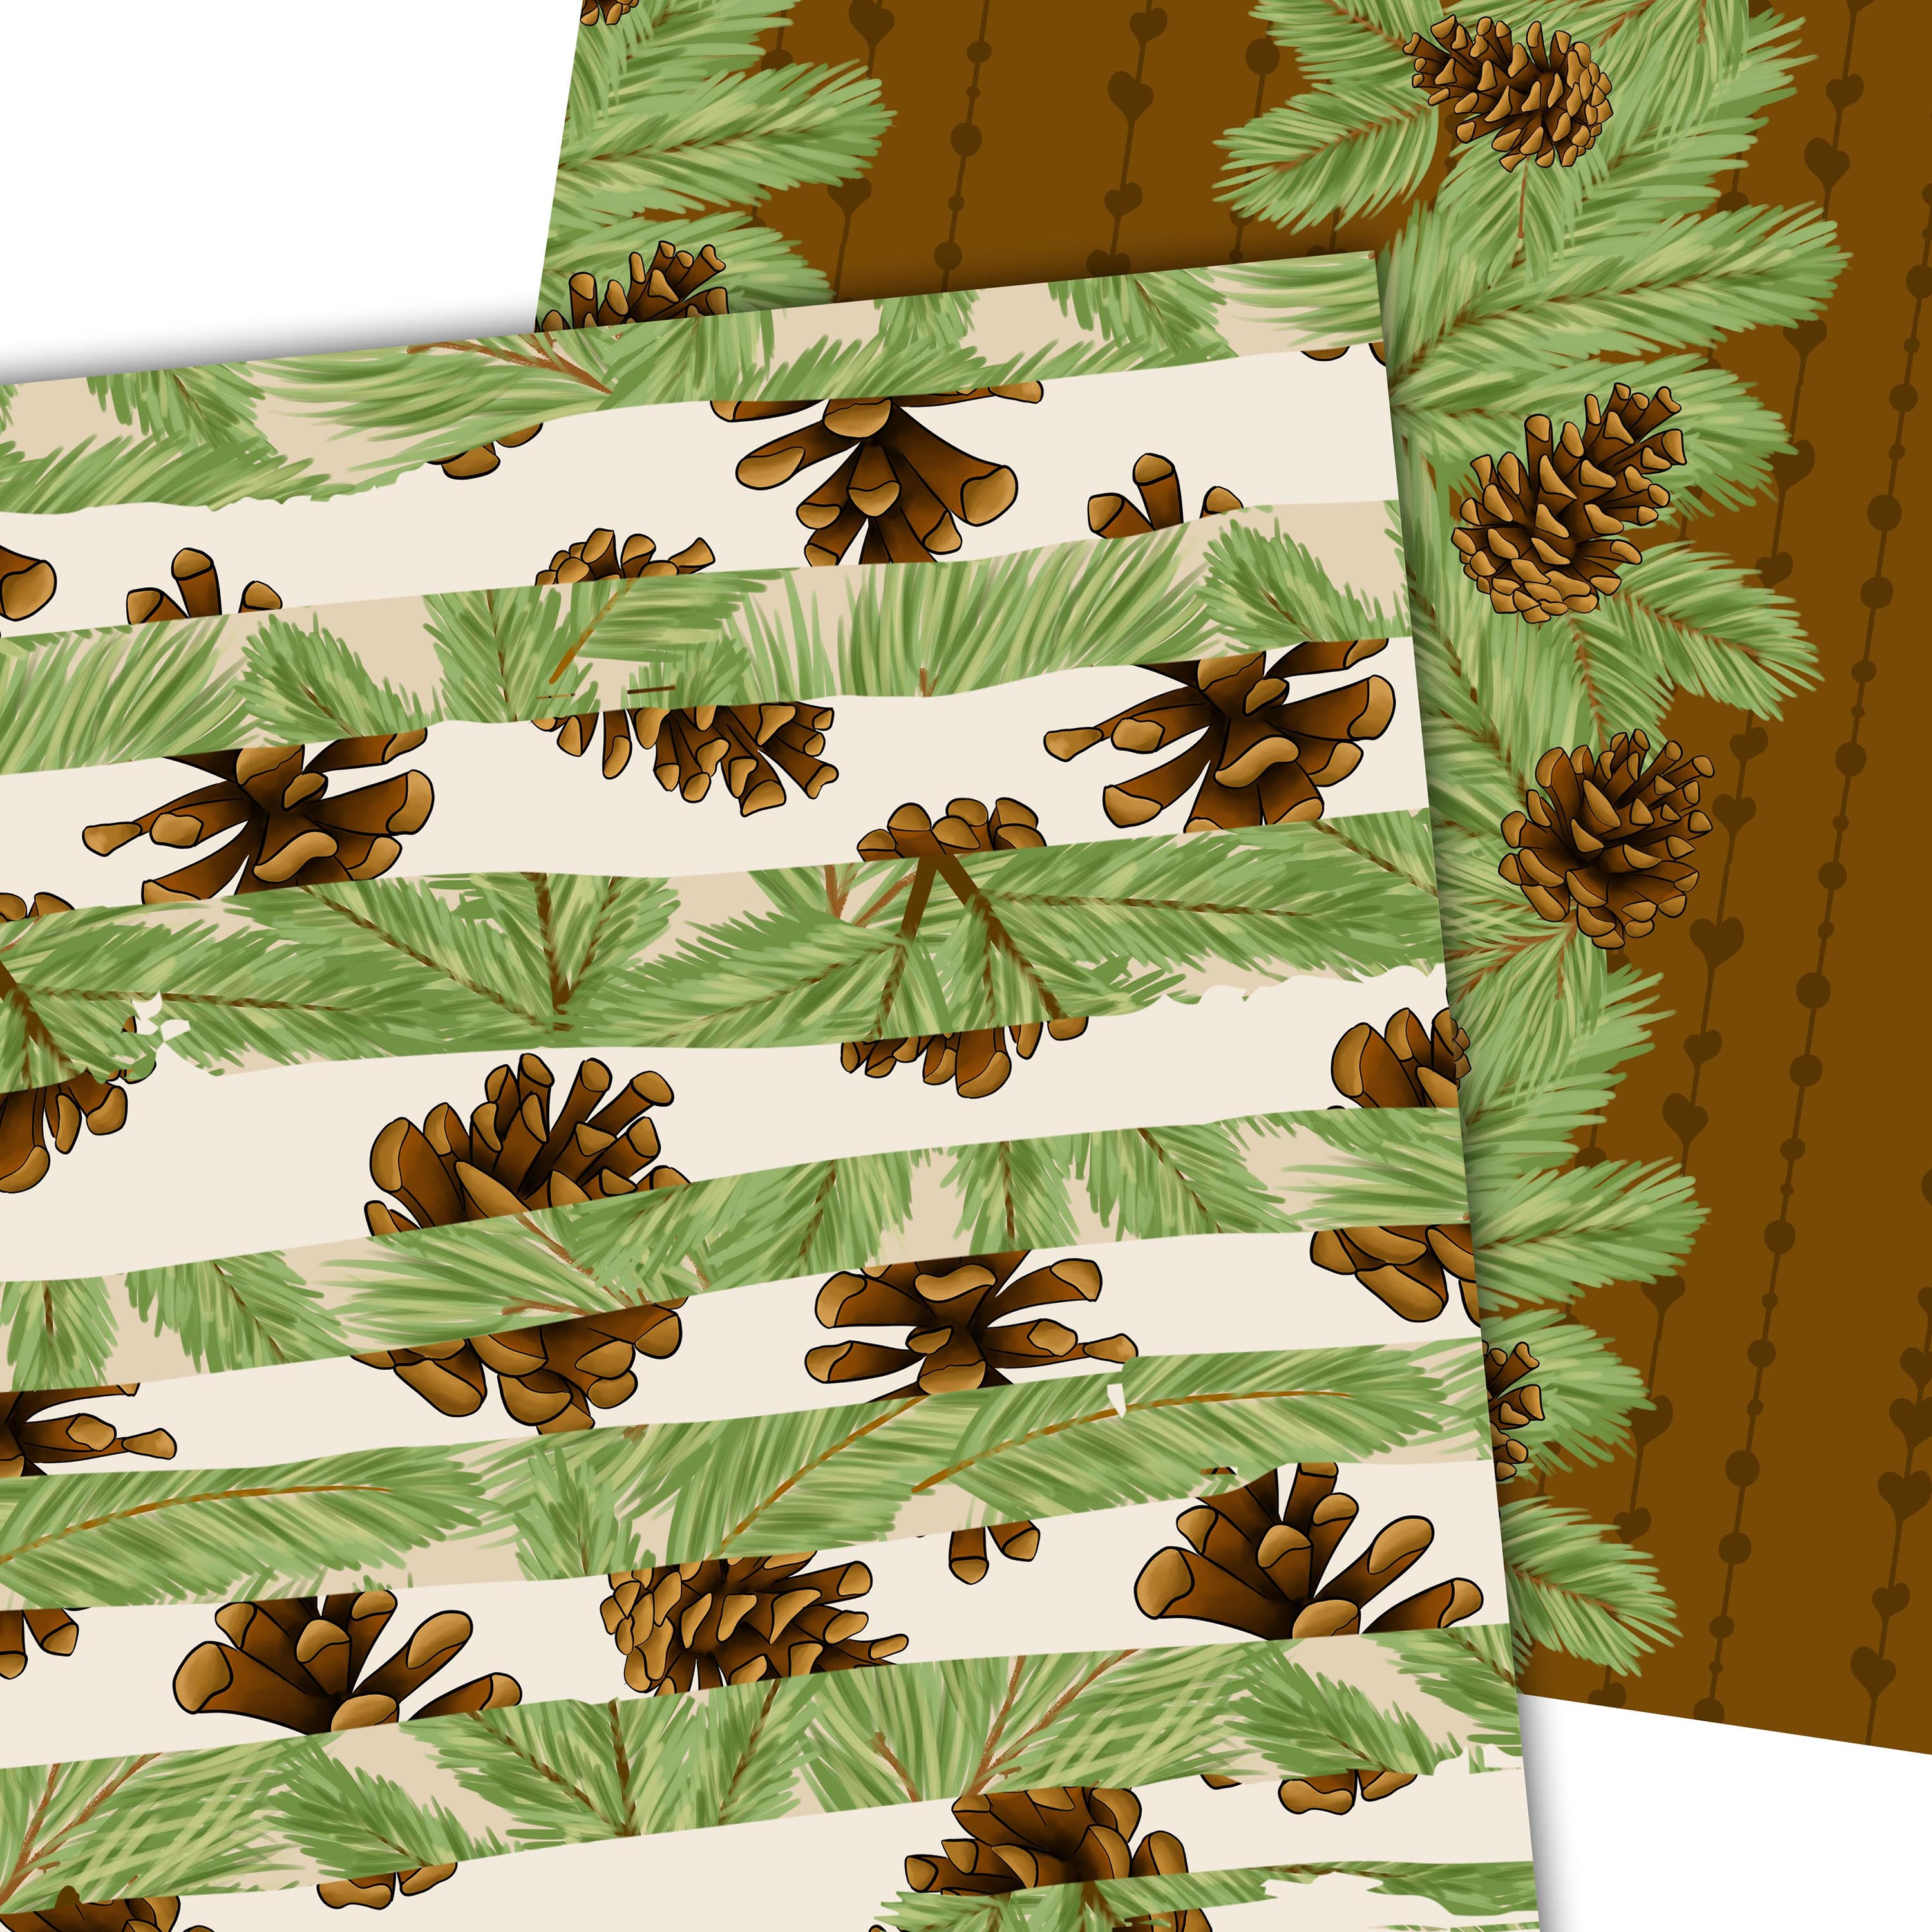 Cotton winter patterns example image 6